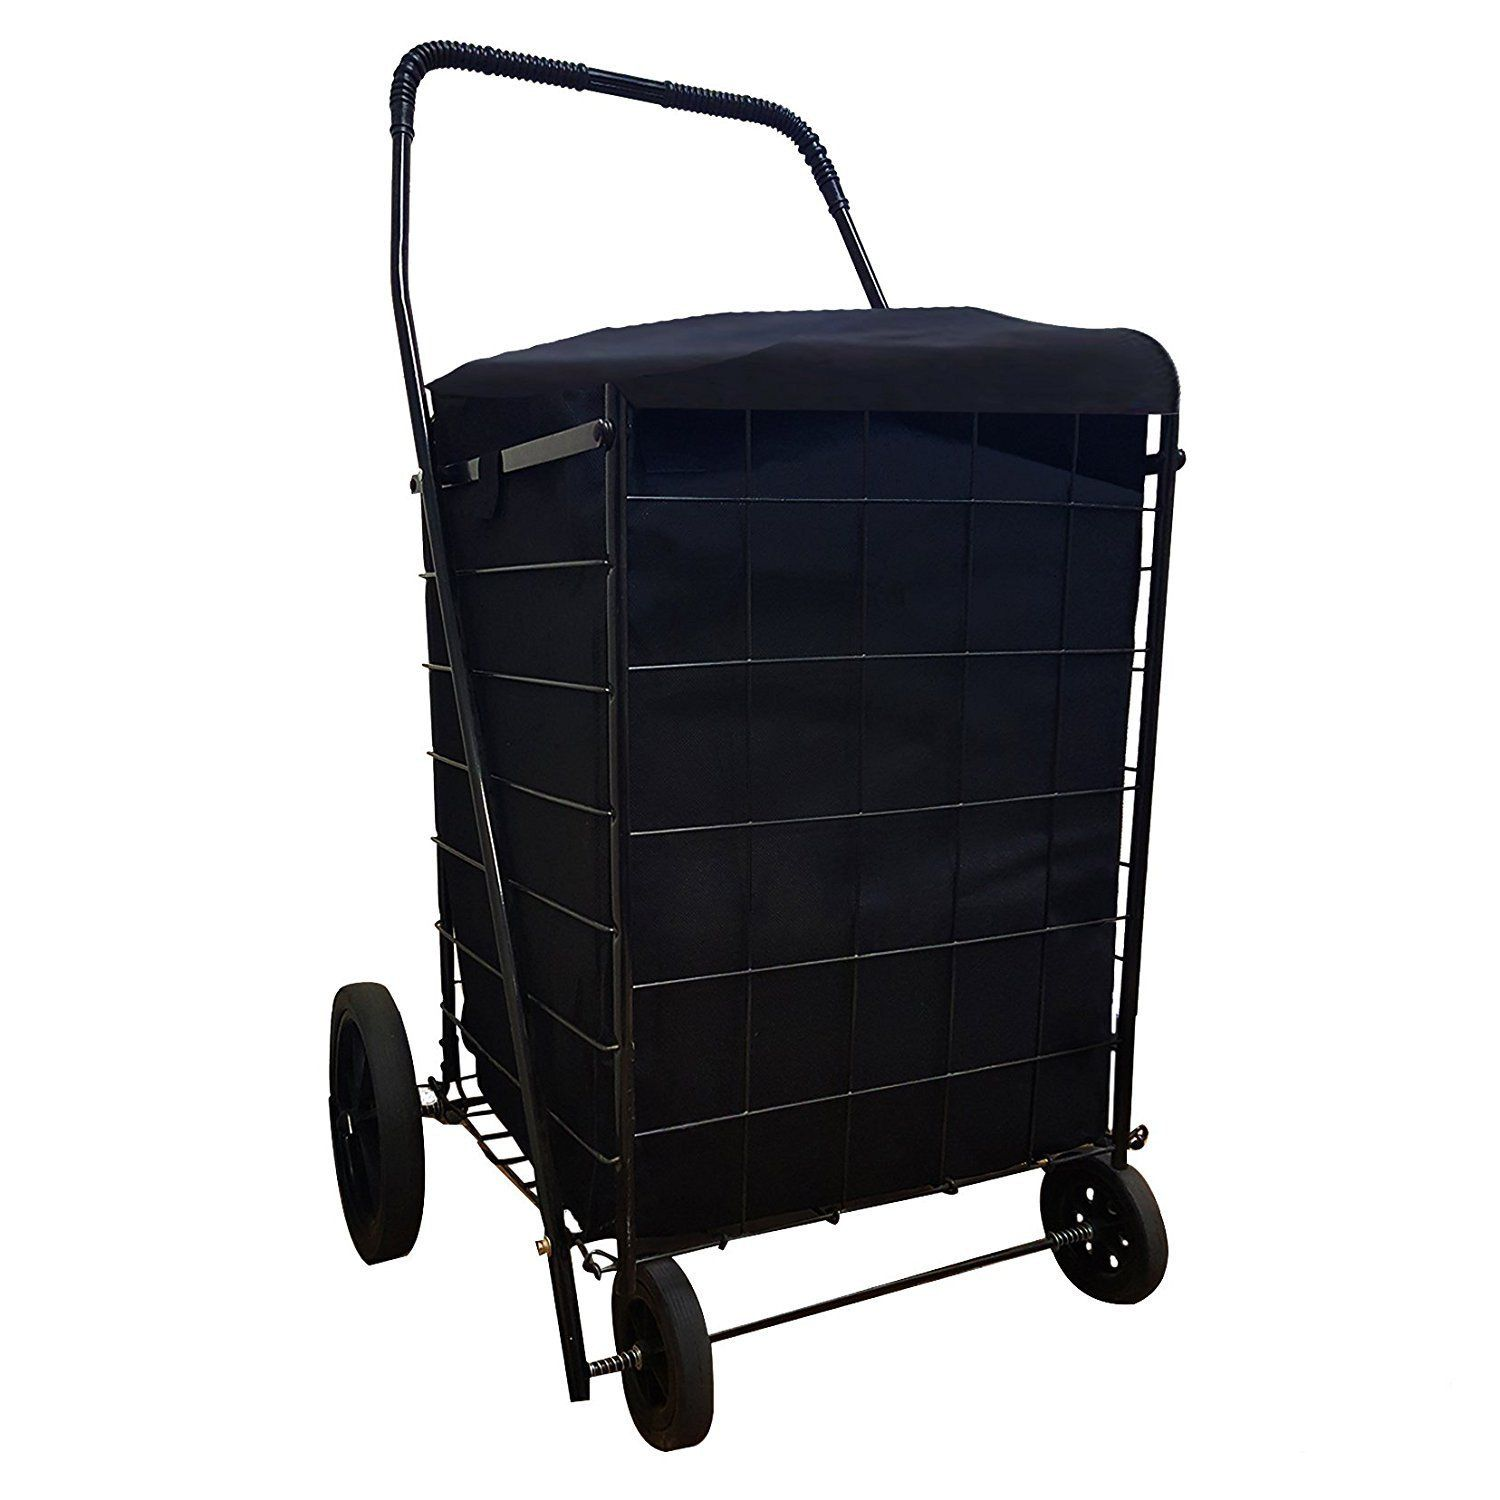 grocery utility cart | L.I.H. Utility Cart | Utility cart ...